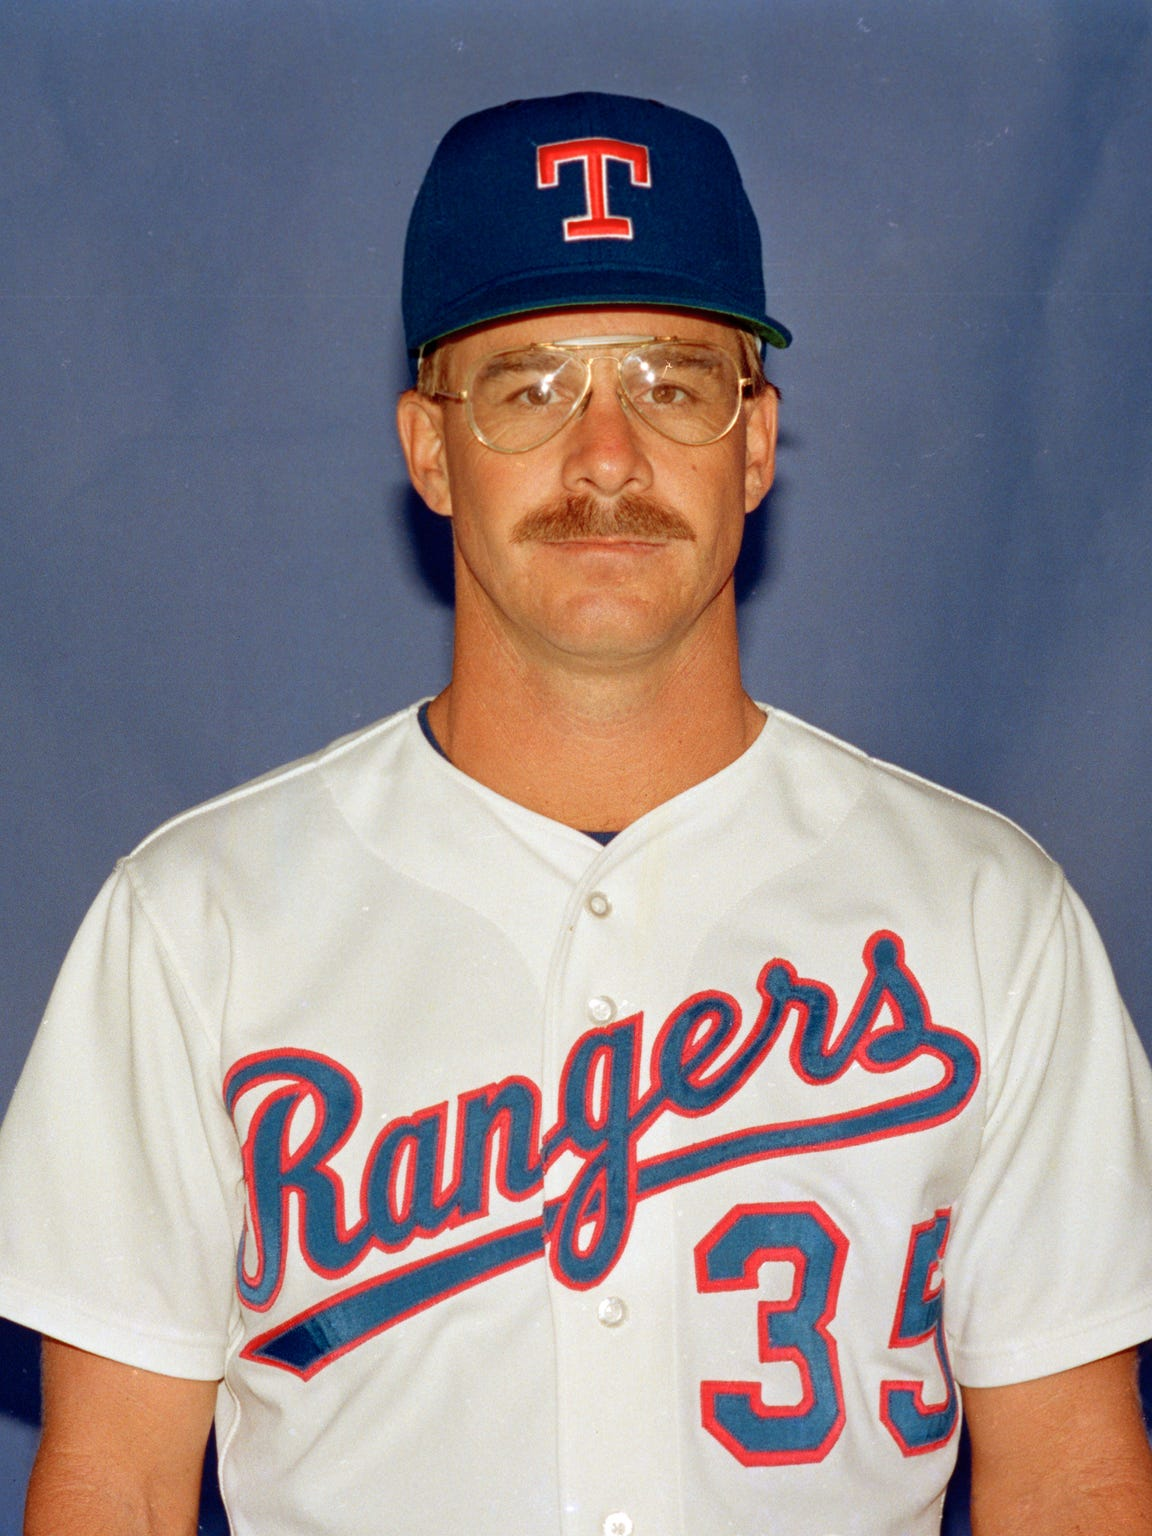 Tom House was pitching coach for Texas Rangers in the